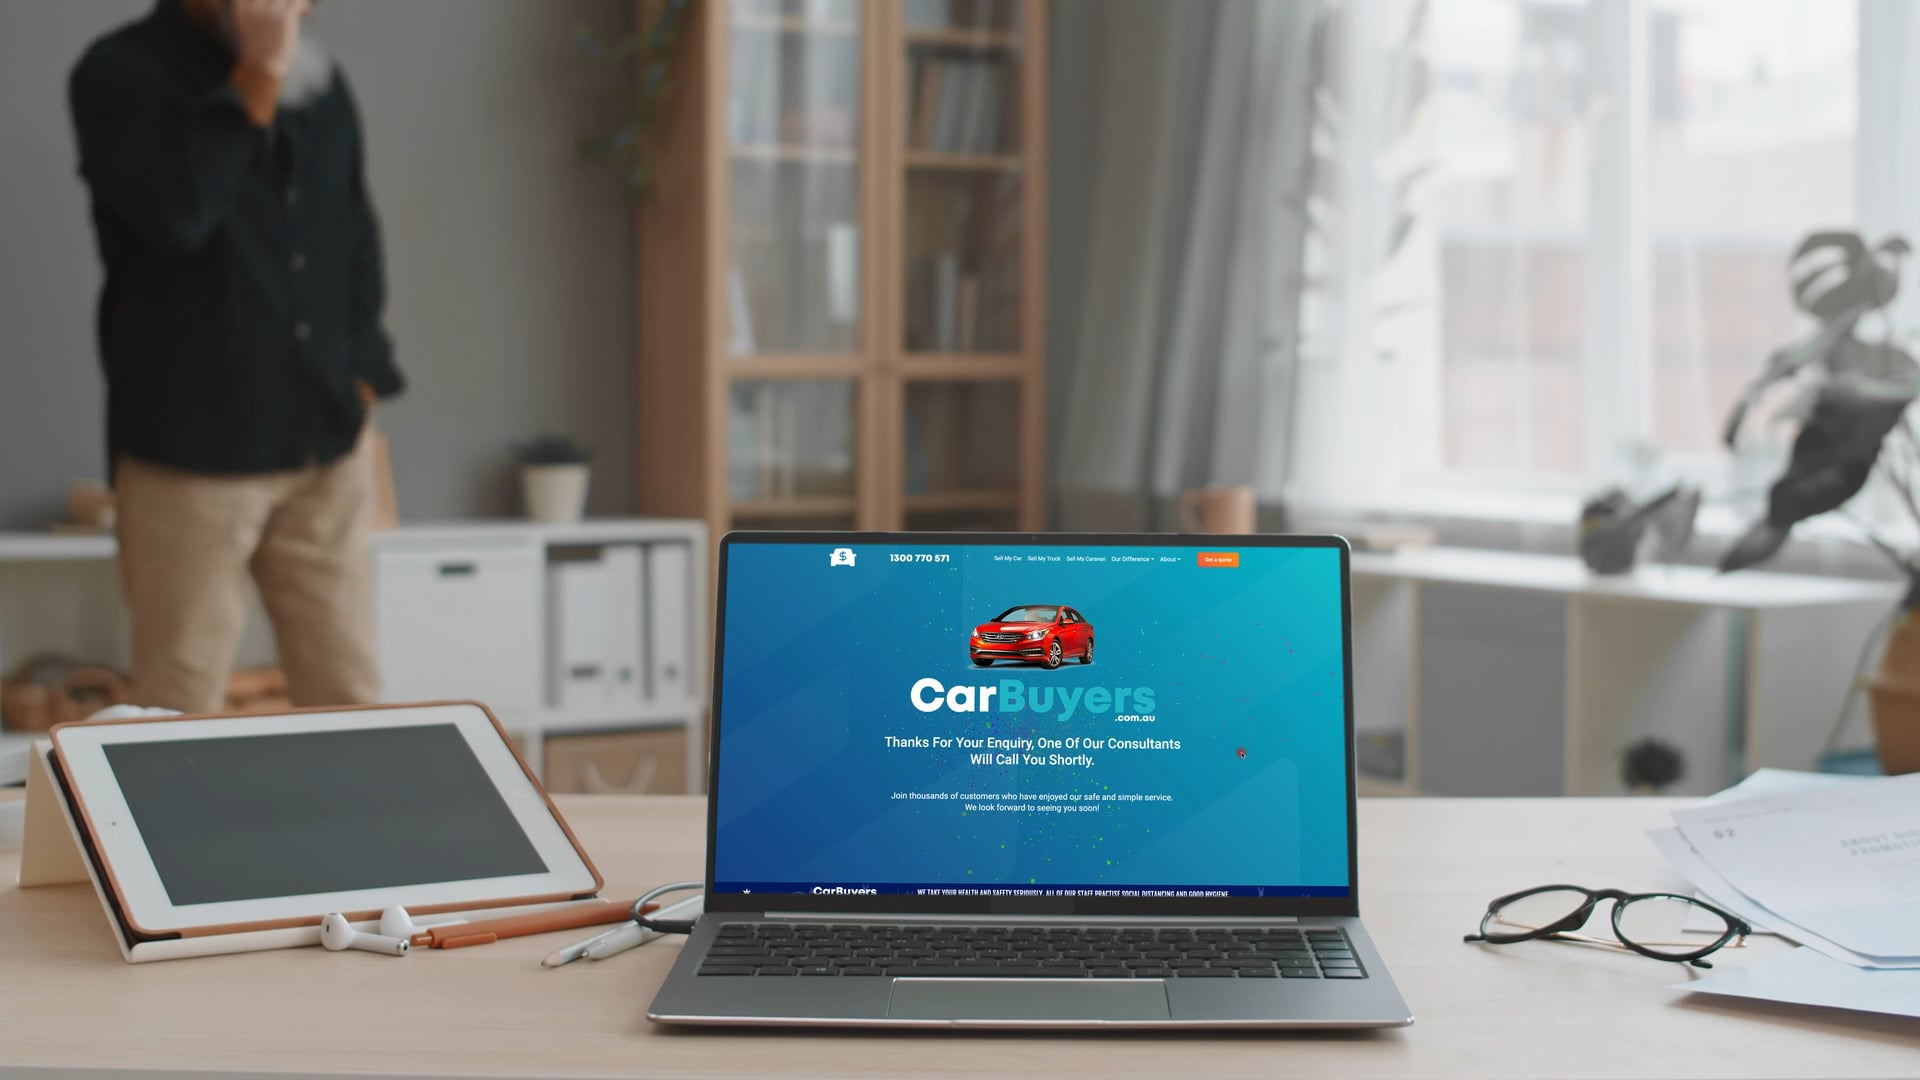 CarBuyers promo video